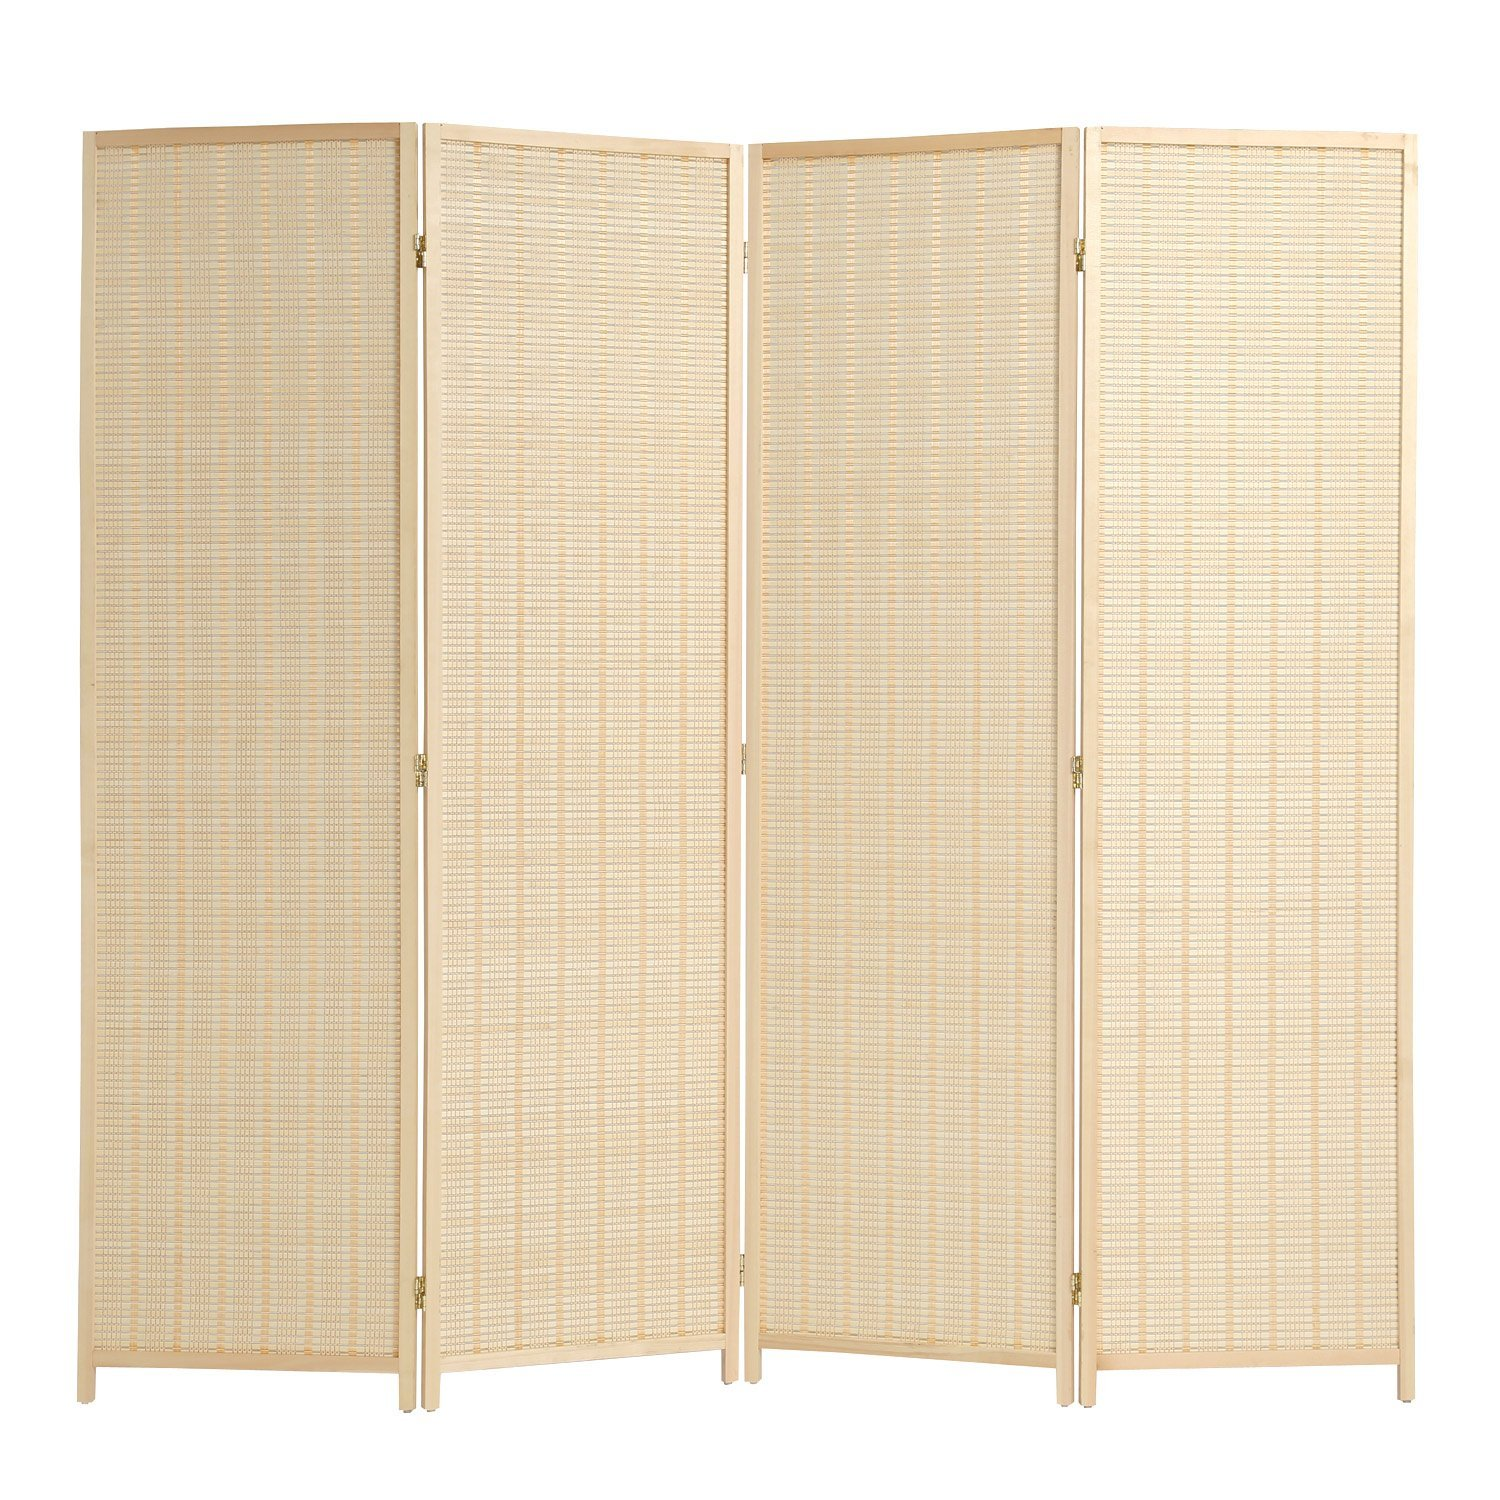 RHF 6 ft. Tal -Extra Wide-Beige Woven Bamboo&4 panel room divider/screen,room dividers and folding privacy screens 4 panel&Room dividers and folding privacy screens-Beige Bamboo 4 Panels